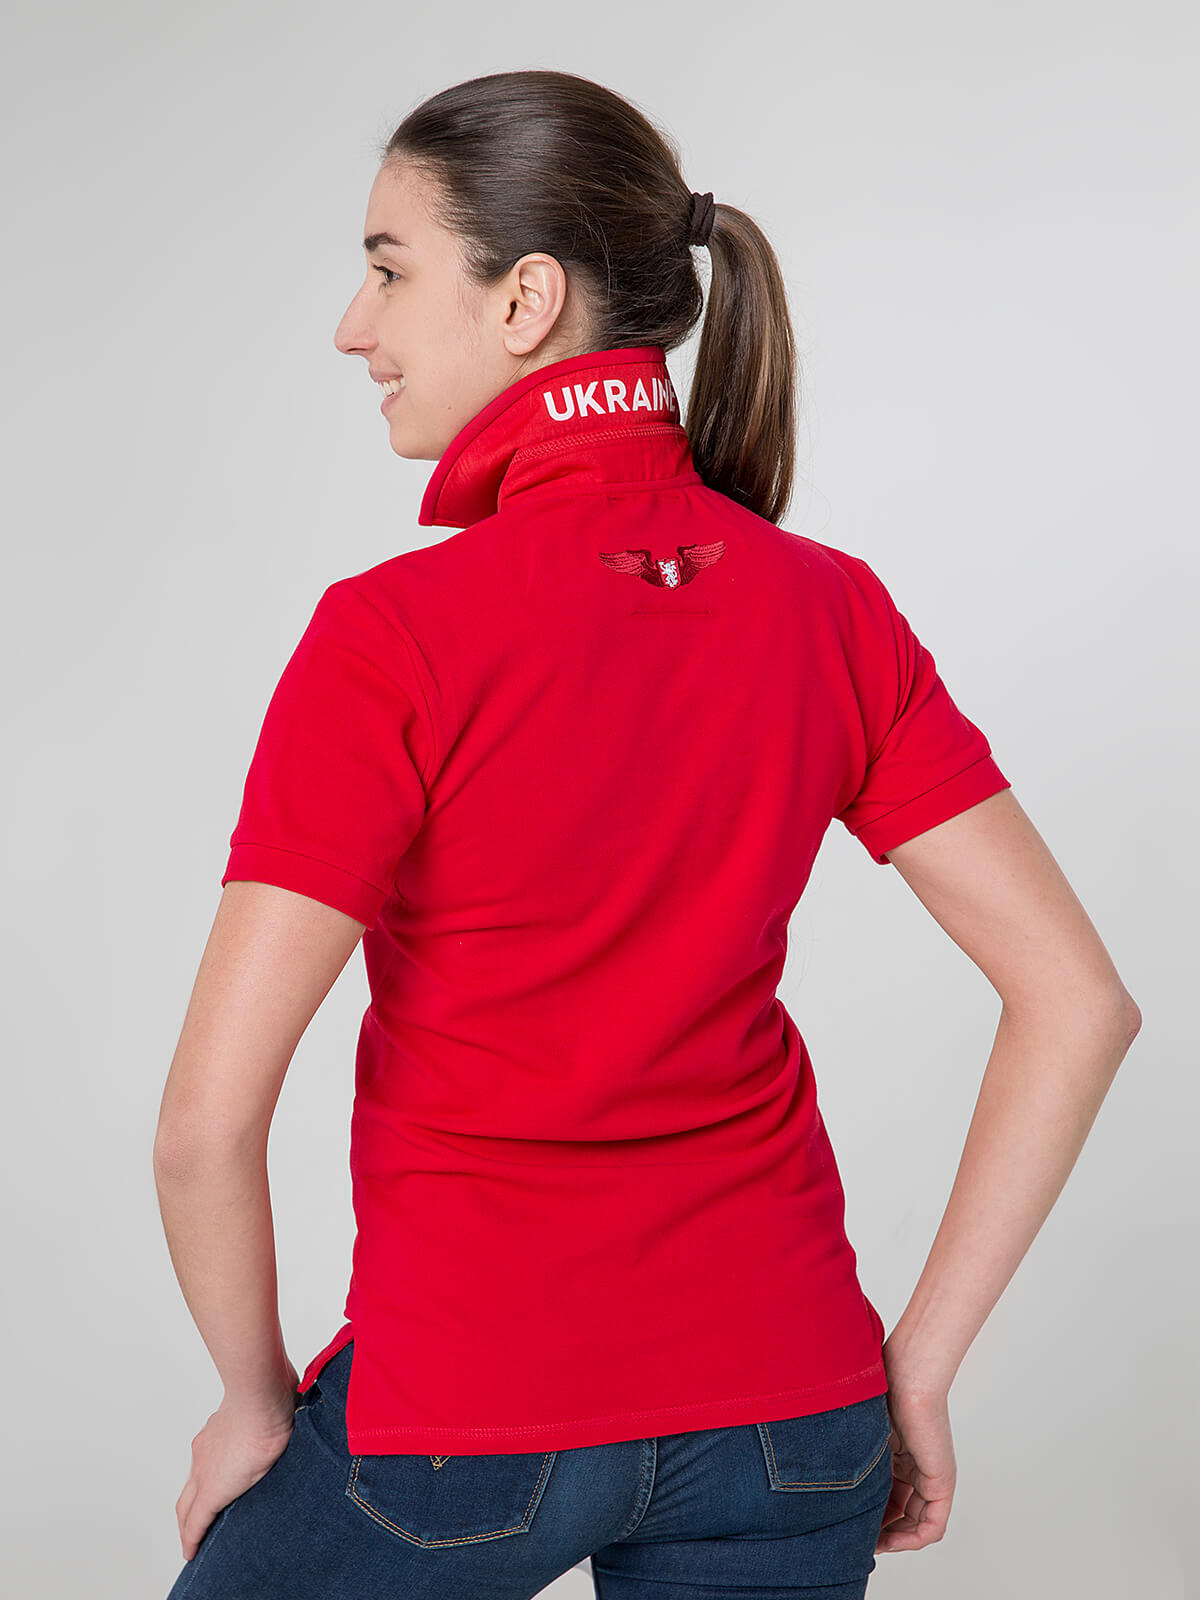 Women's Polo Shirt Wings. Color red.  Pique fabric: 100% cotton.